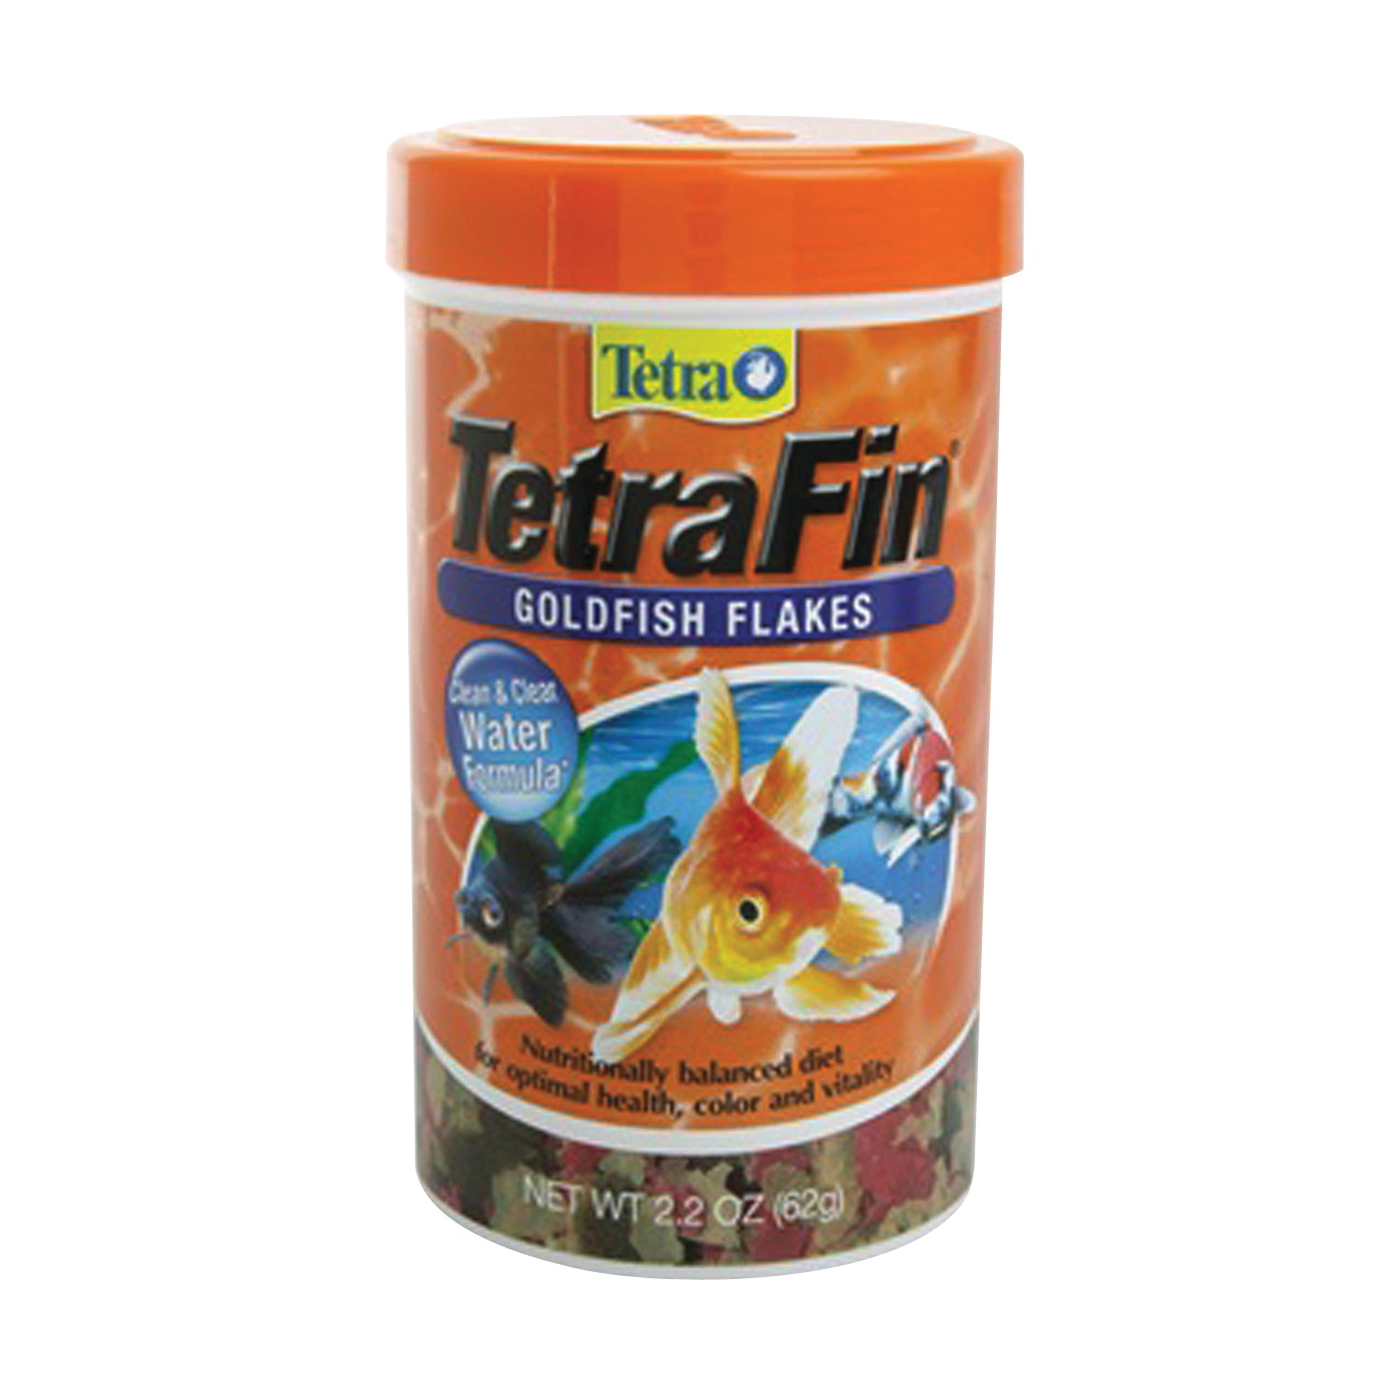 Picture of Tetra TetraFin 77127 Goldfish Flakes, Flakes, 2.2 oz Package